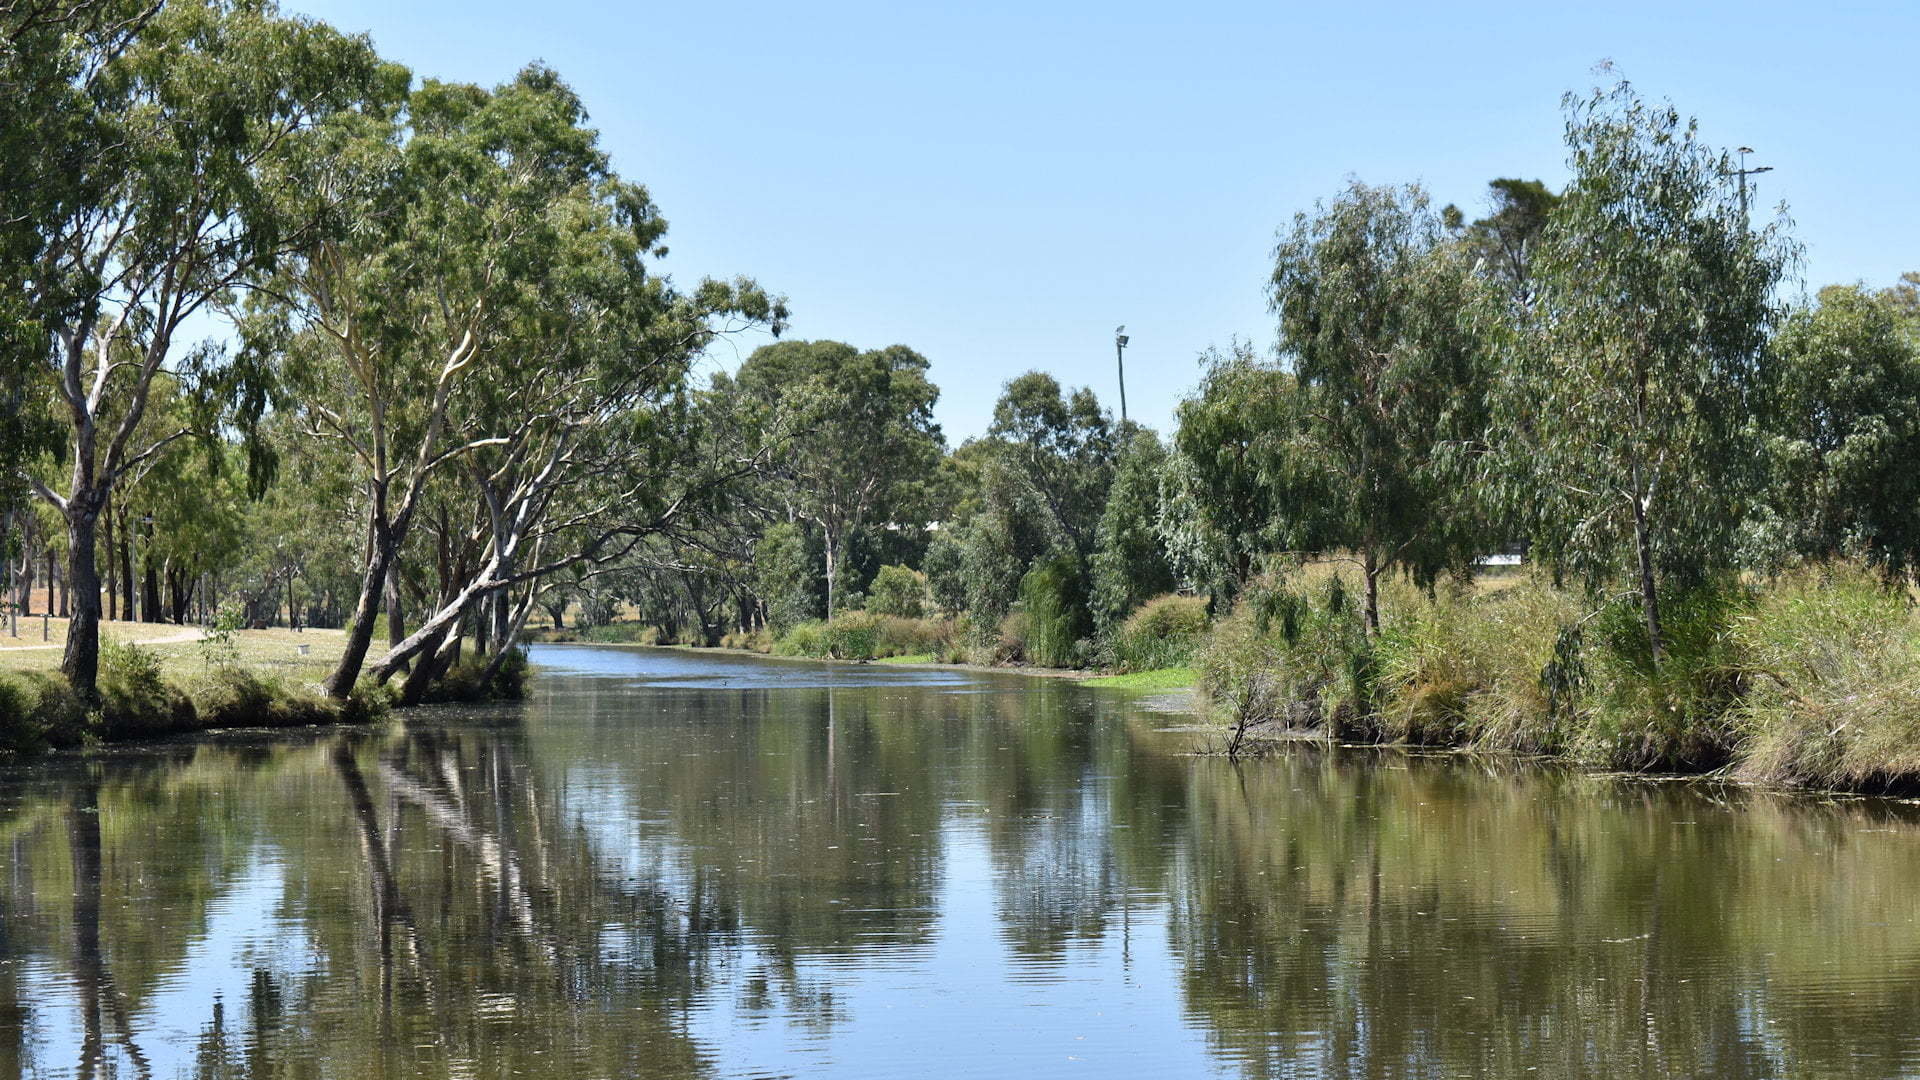 Condamine River in Warwick with the skyline reflecting on the water, the Condamine River is the start of the longest river system in Australia, the Murray Darling